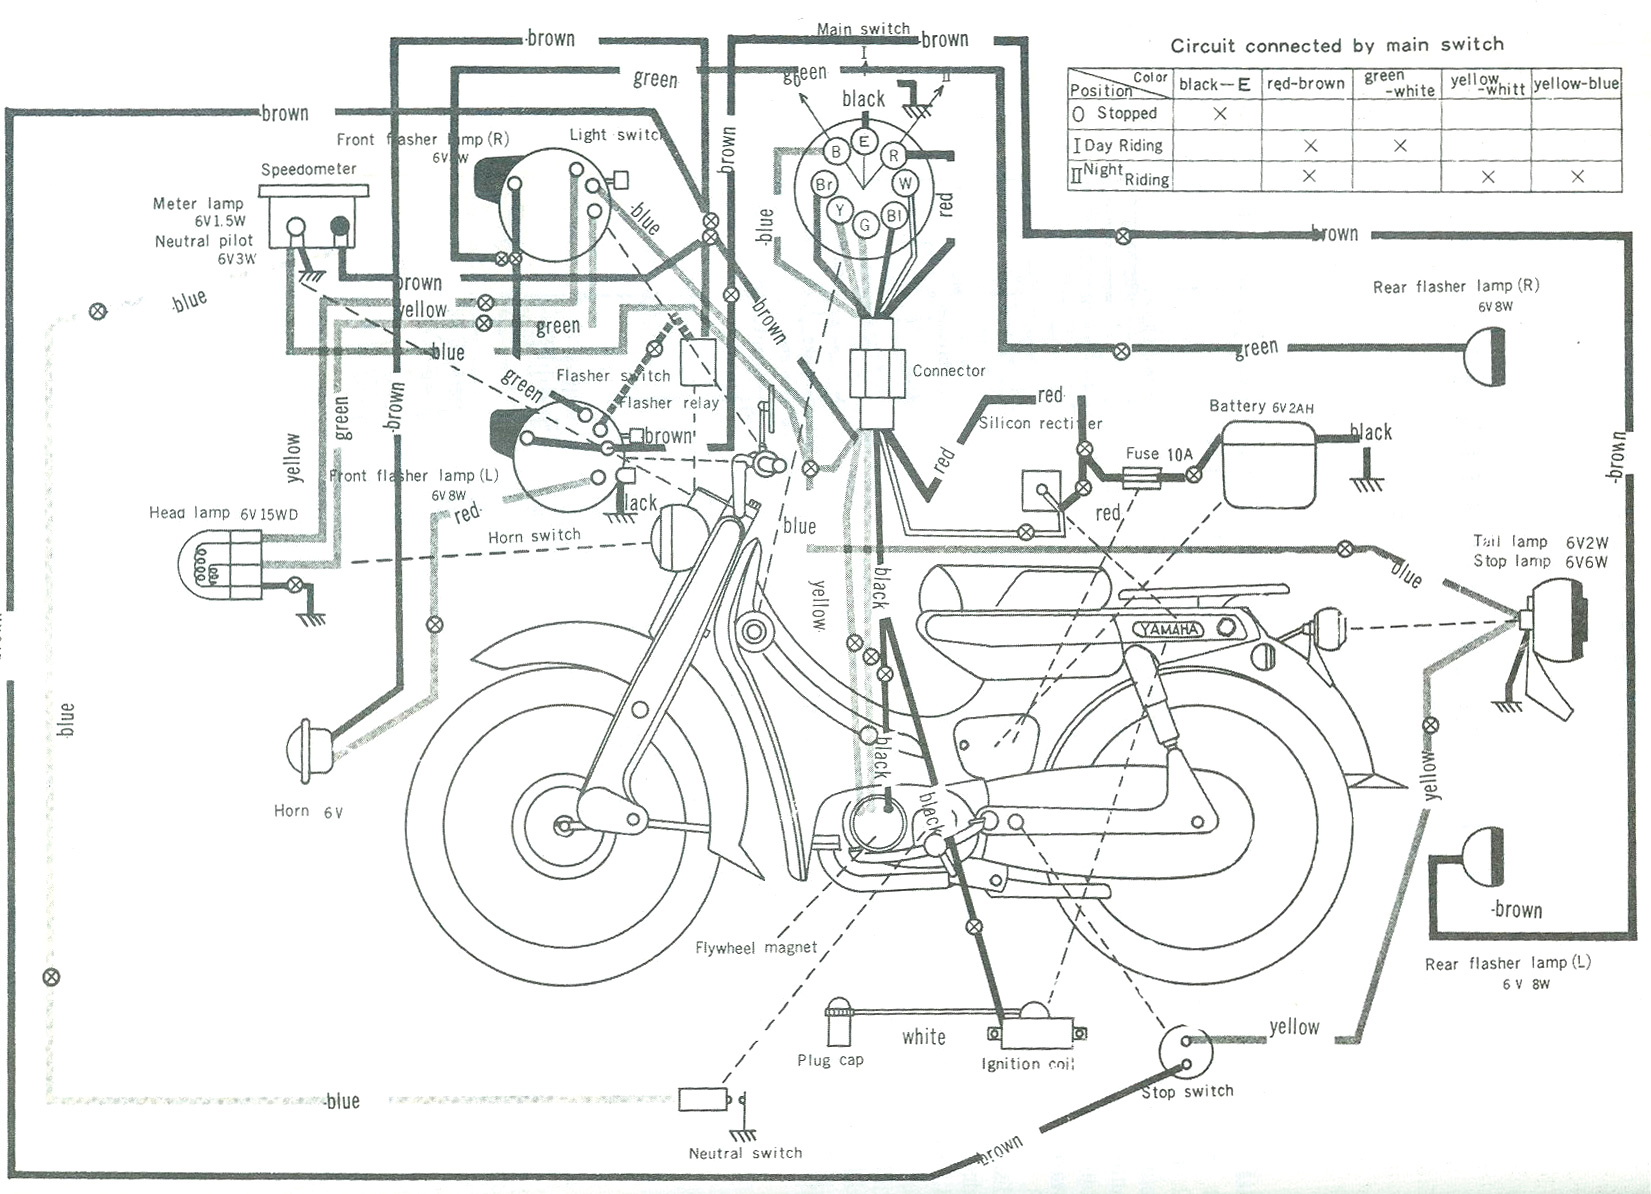 yamaha motorcycles wiring diagram - somurich.com 1973 mustang ignition switch wiring diagram